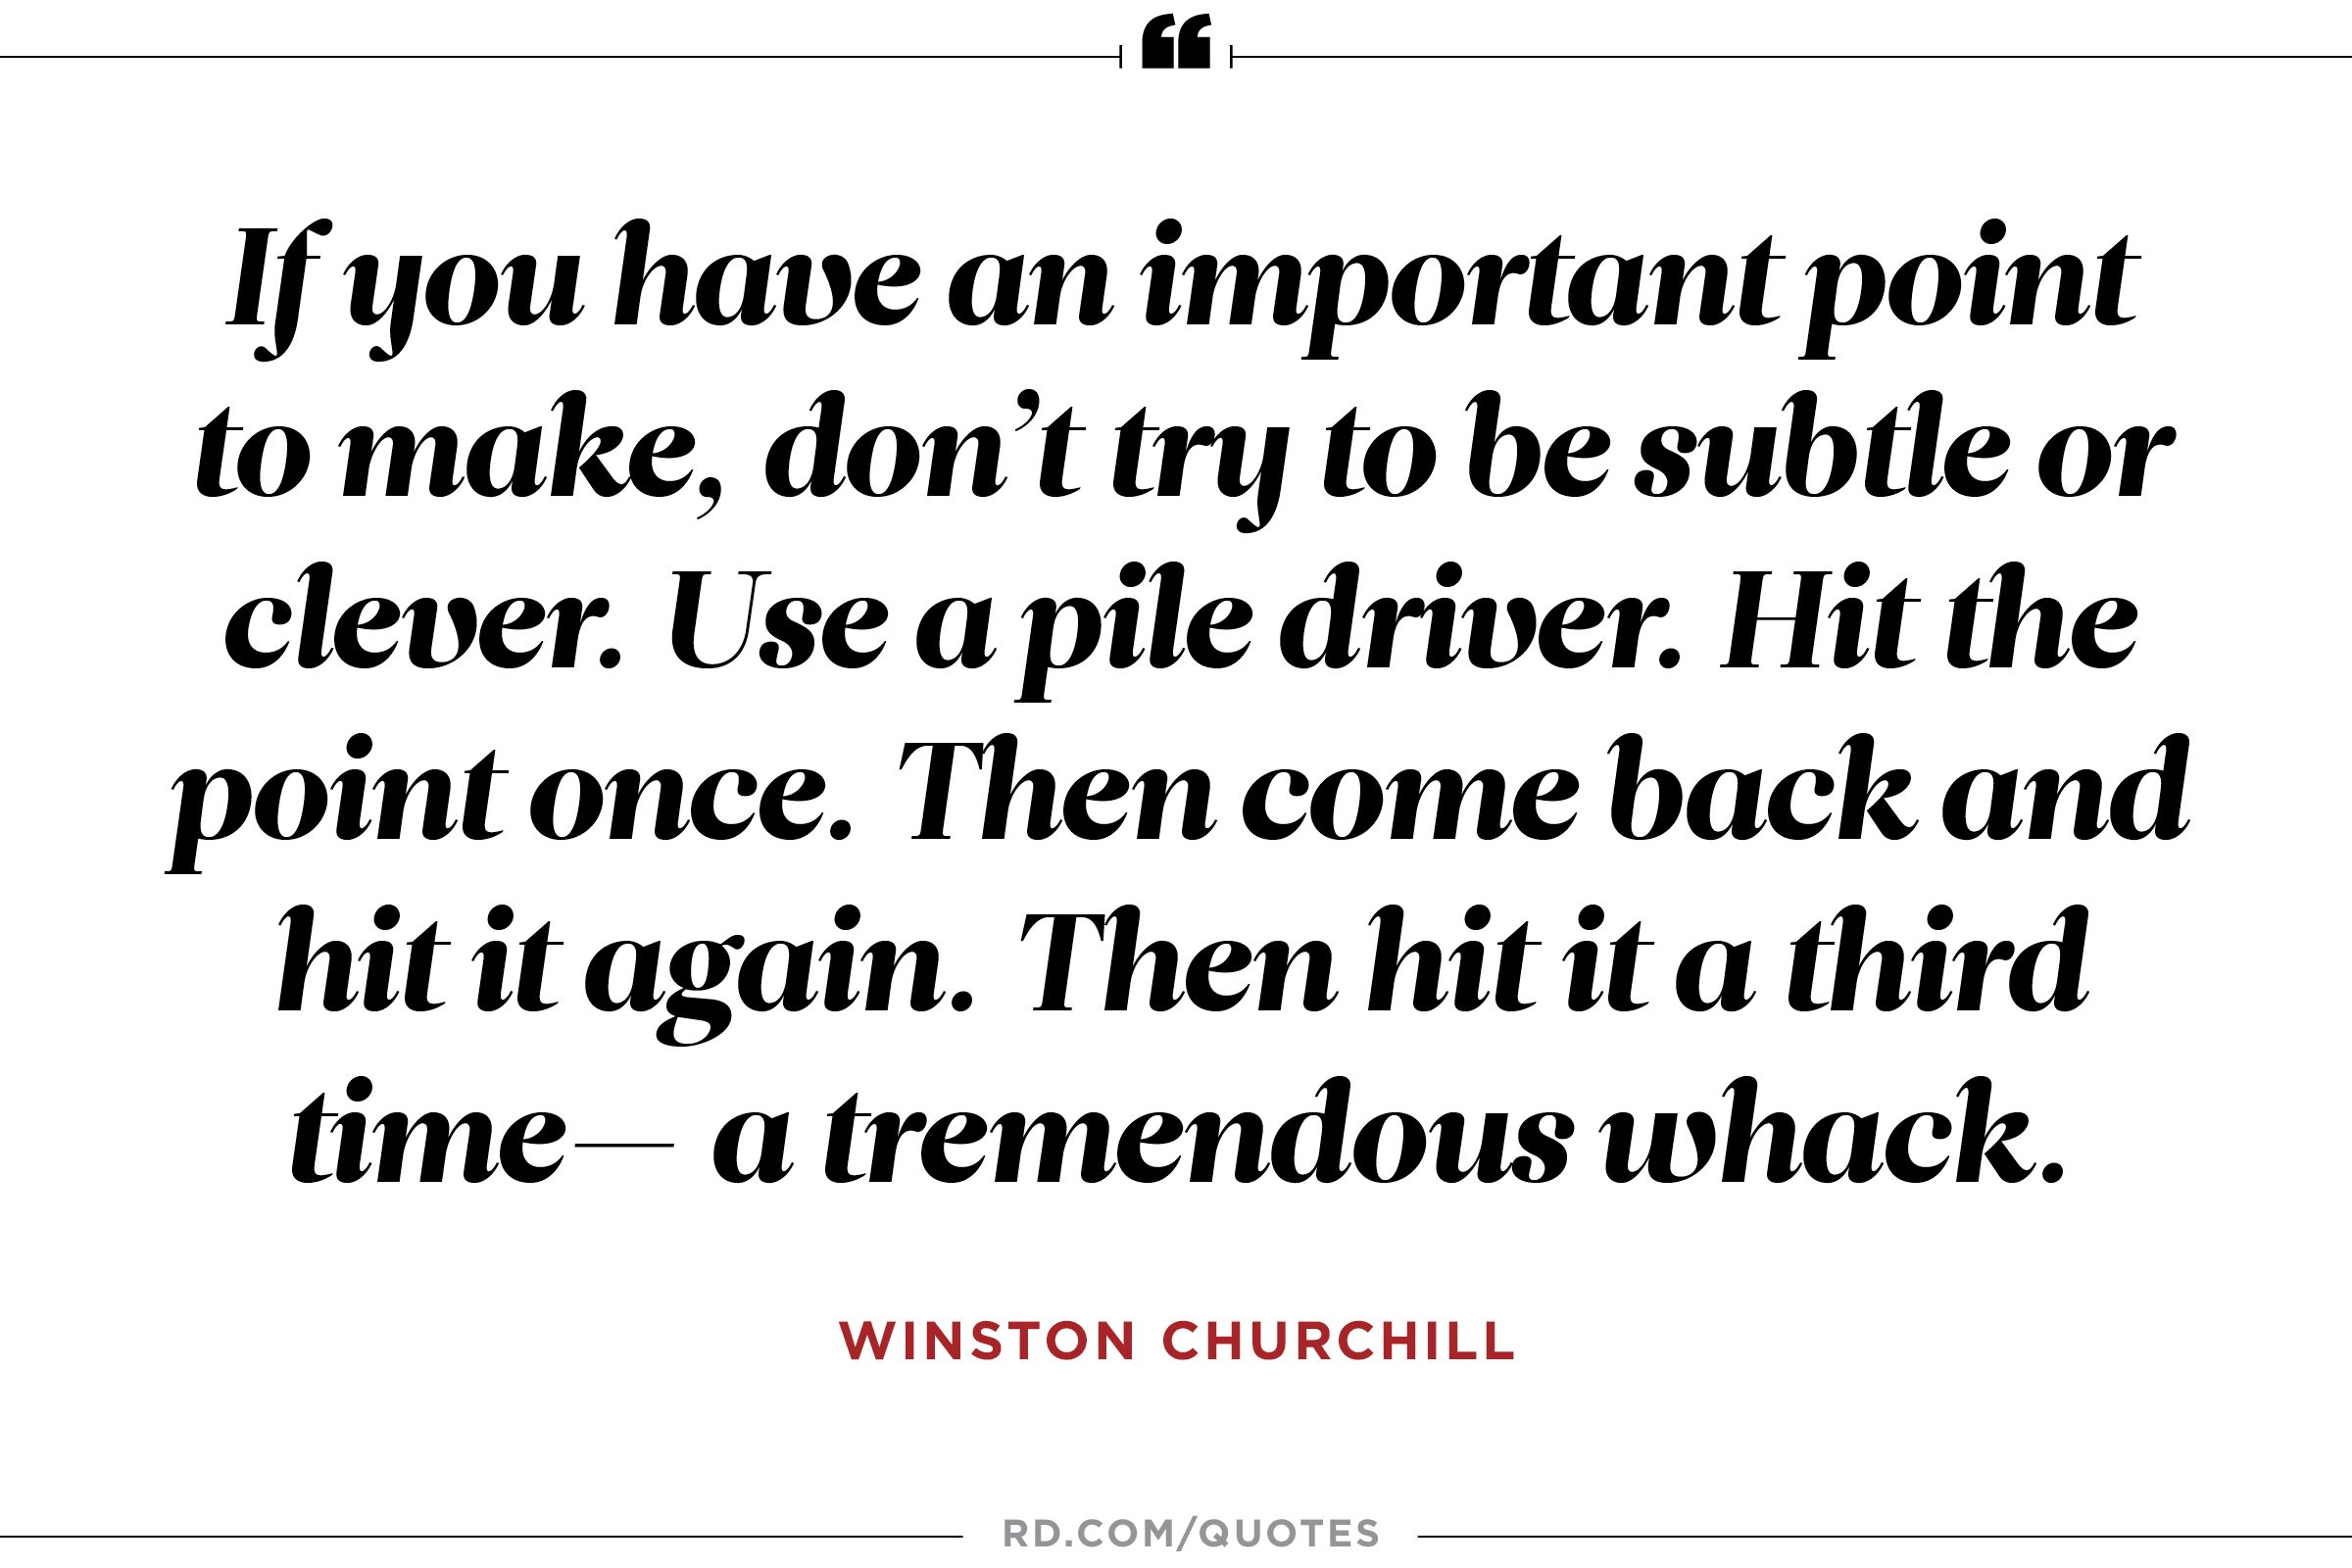 How To Make A Quote 10 Winston Churchill Quotes That Get You To The Corner Office